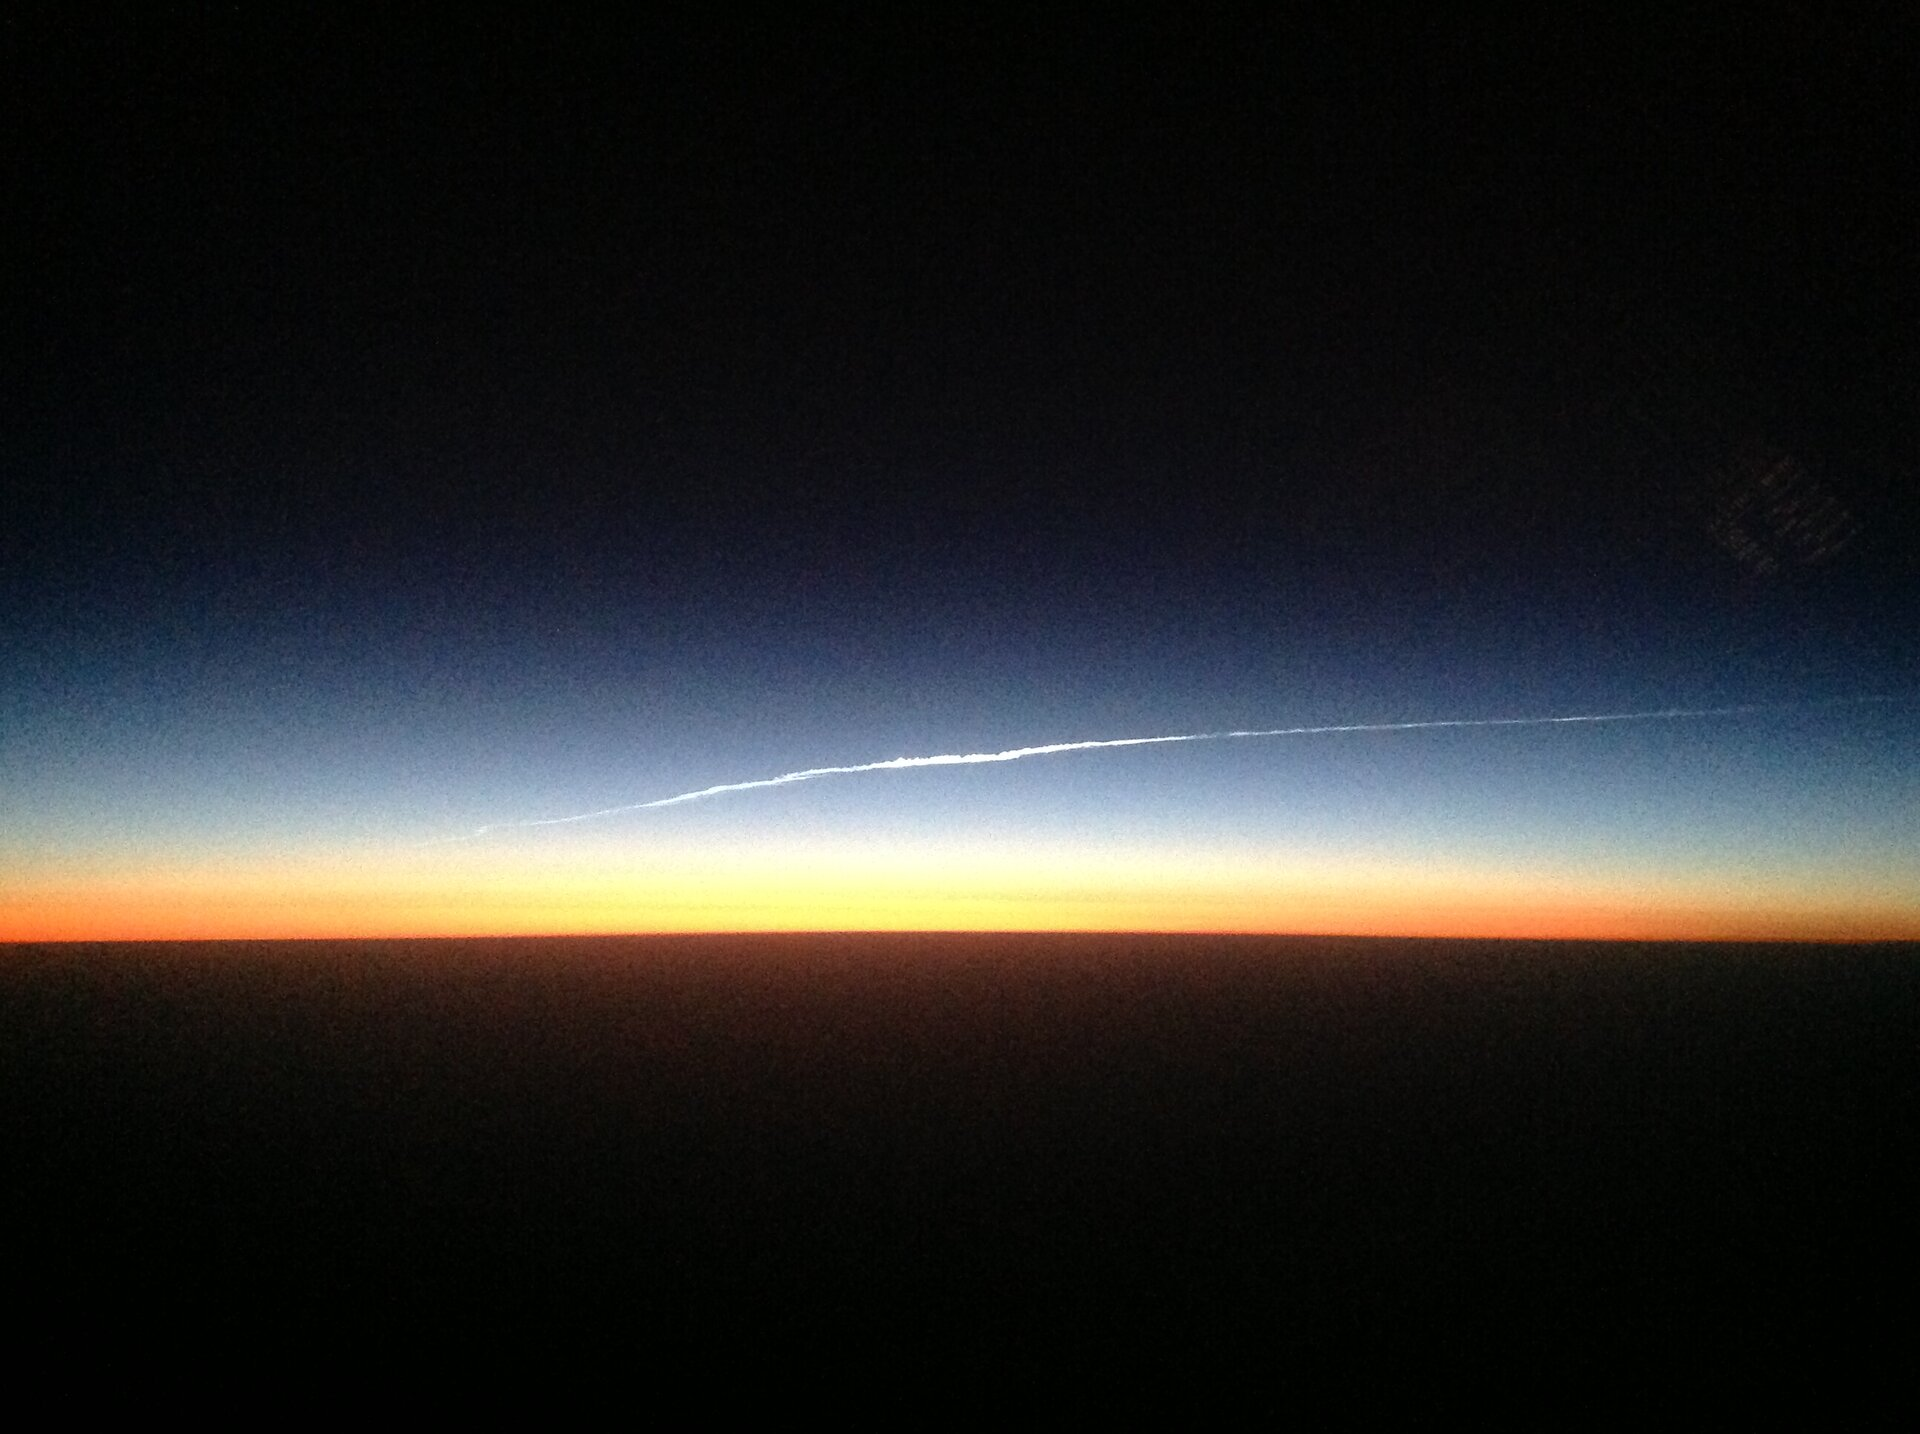 Airline pilot spots astronauts returning to Earth